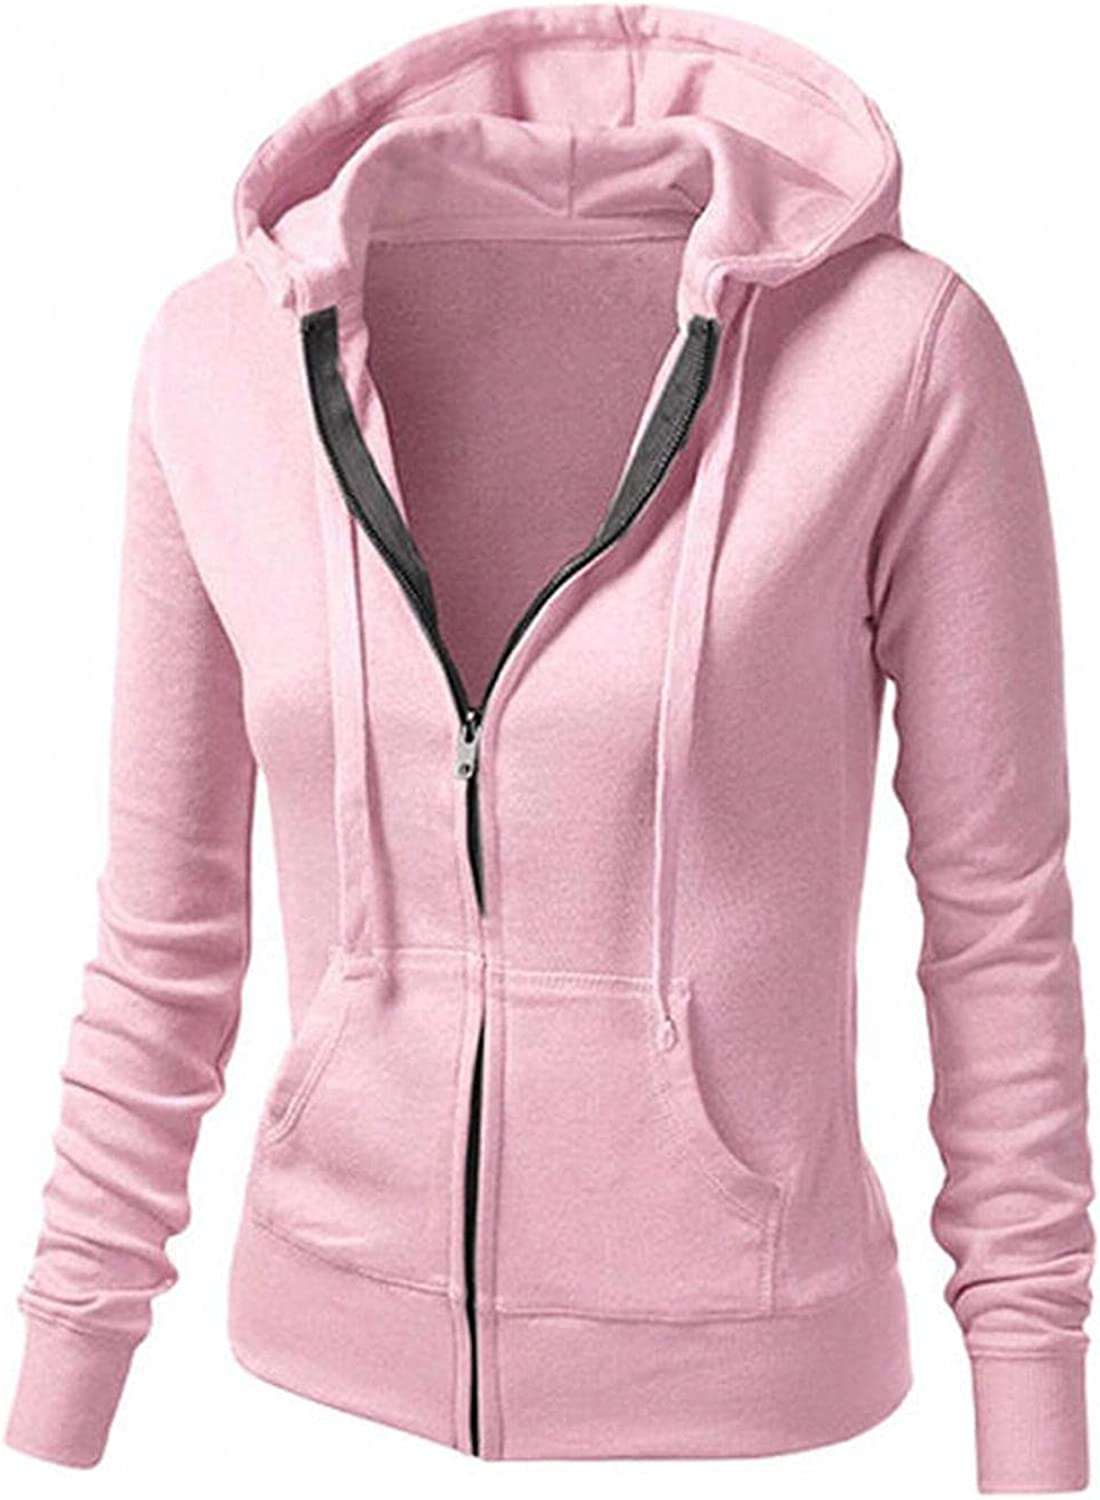 Nulairt Womens Hoodies, ,Women's Solid Color Zip Up Sweatshirts Jackets Fashion Drawstring Hooded Tops with Pockets